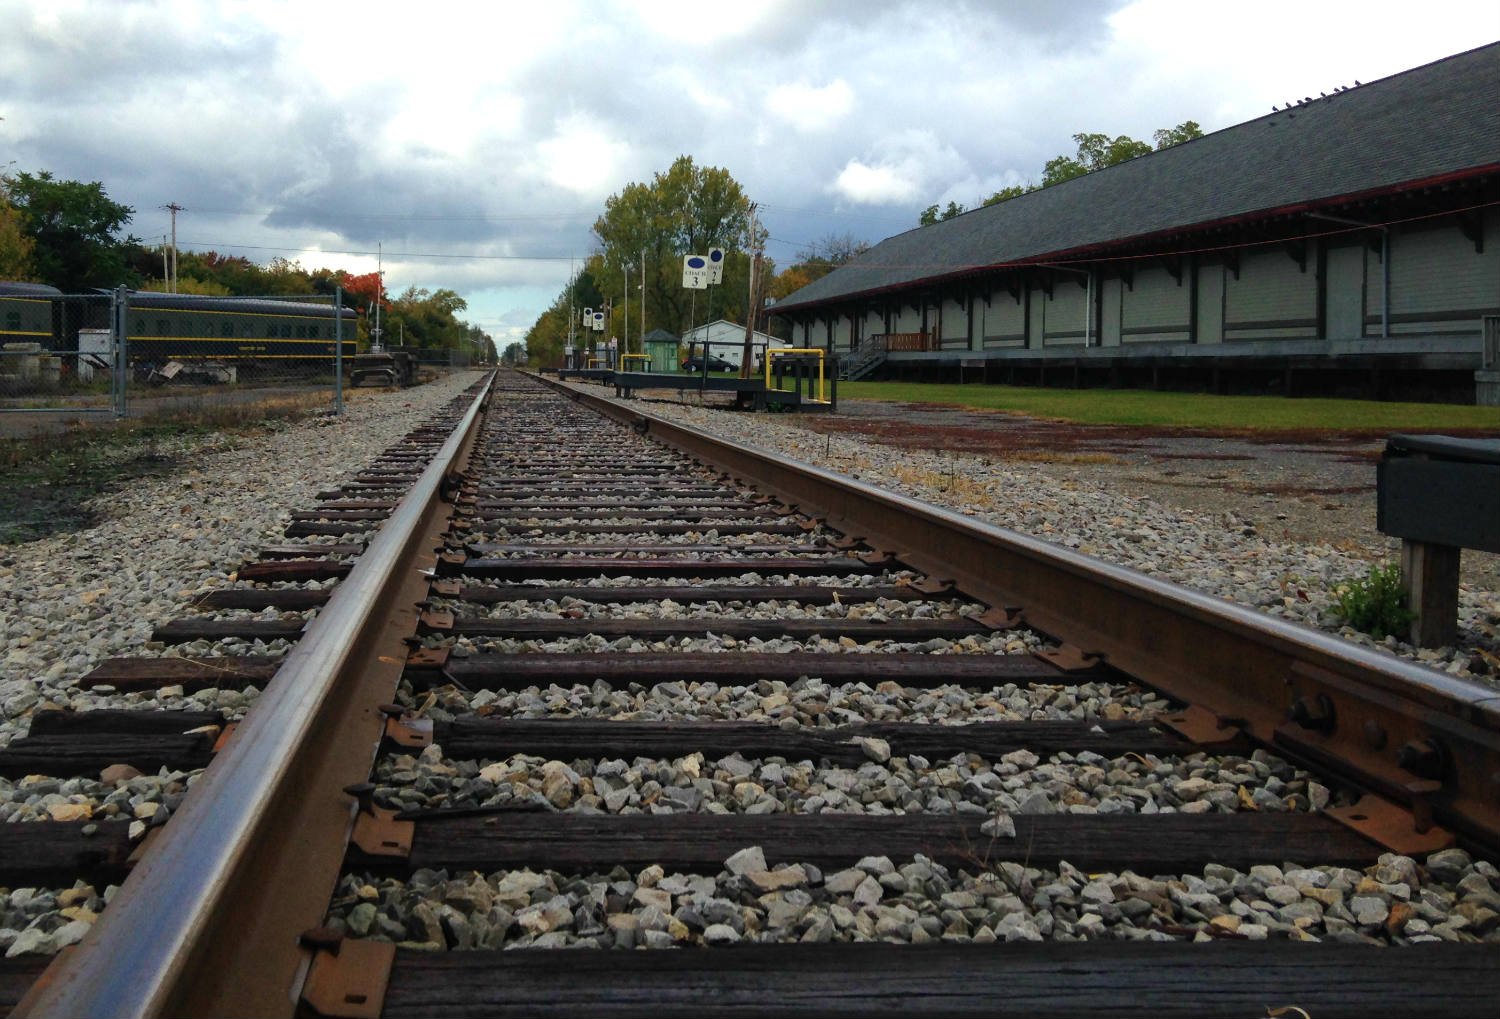 Falls Road Train Track and Depot in Medina, NY